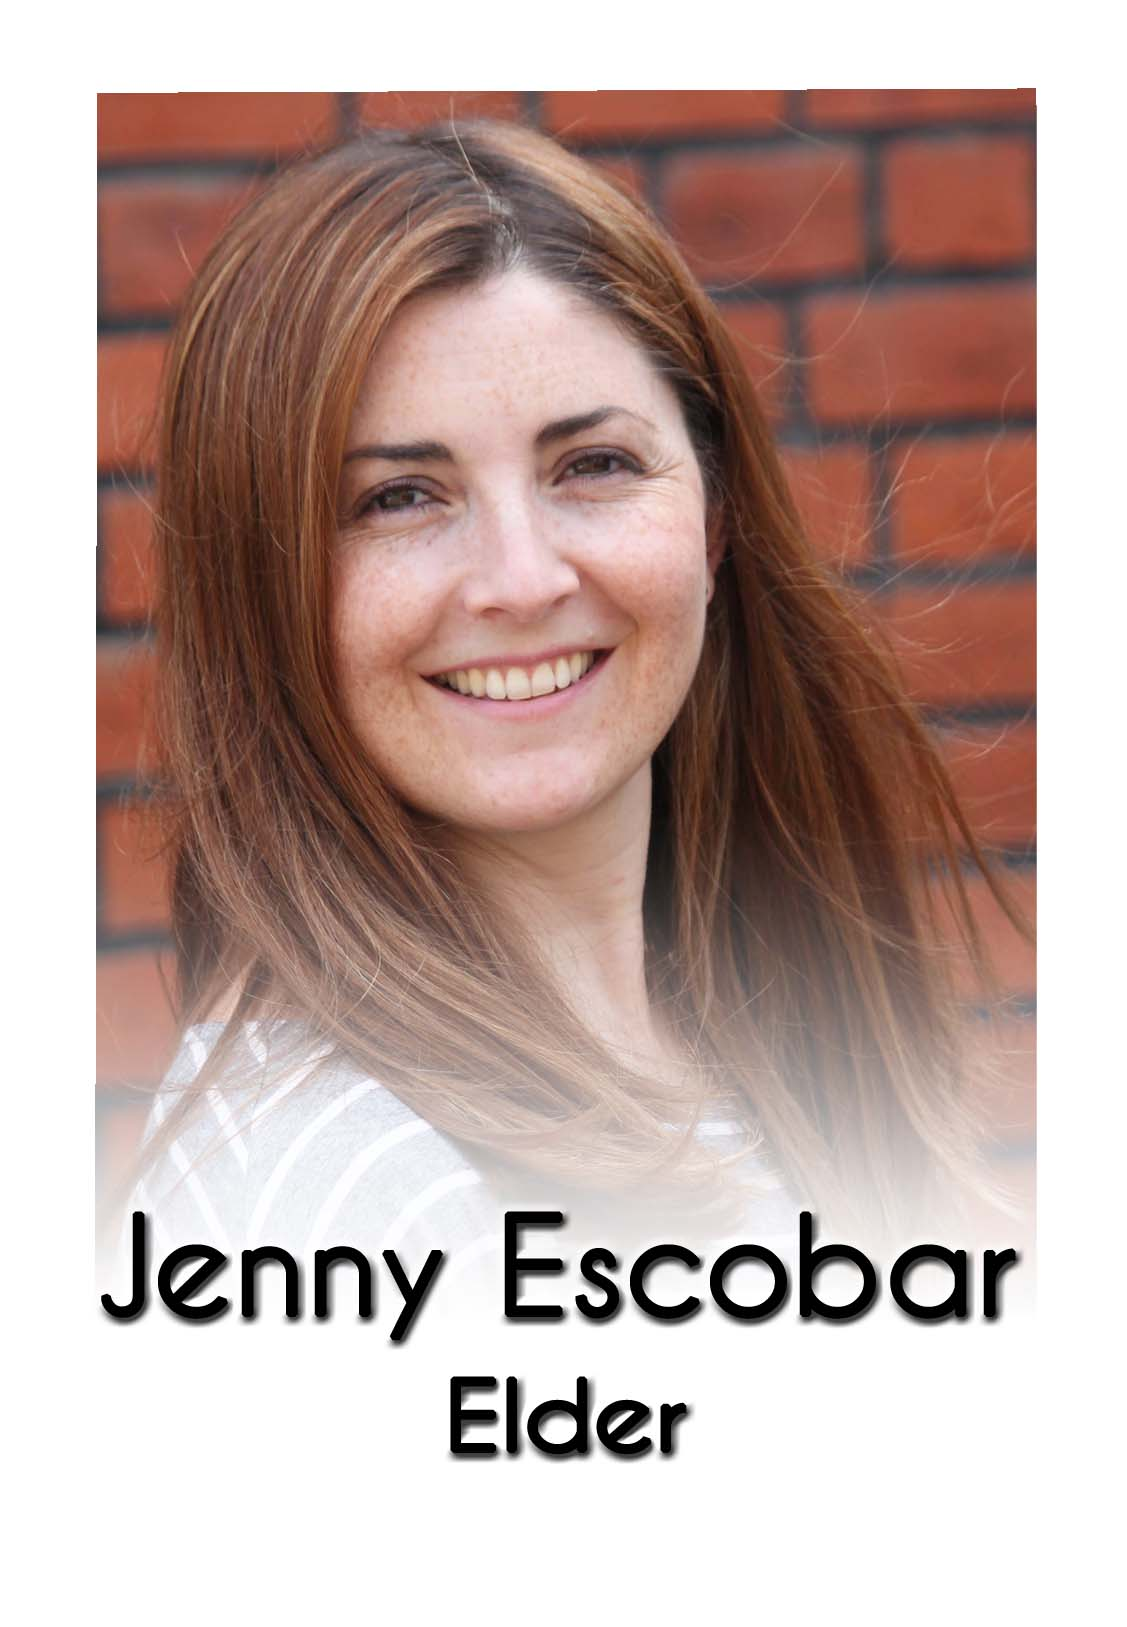 Jenny Escobar labelled